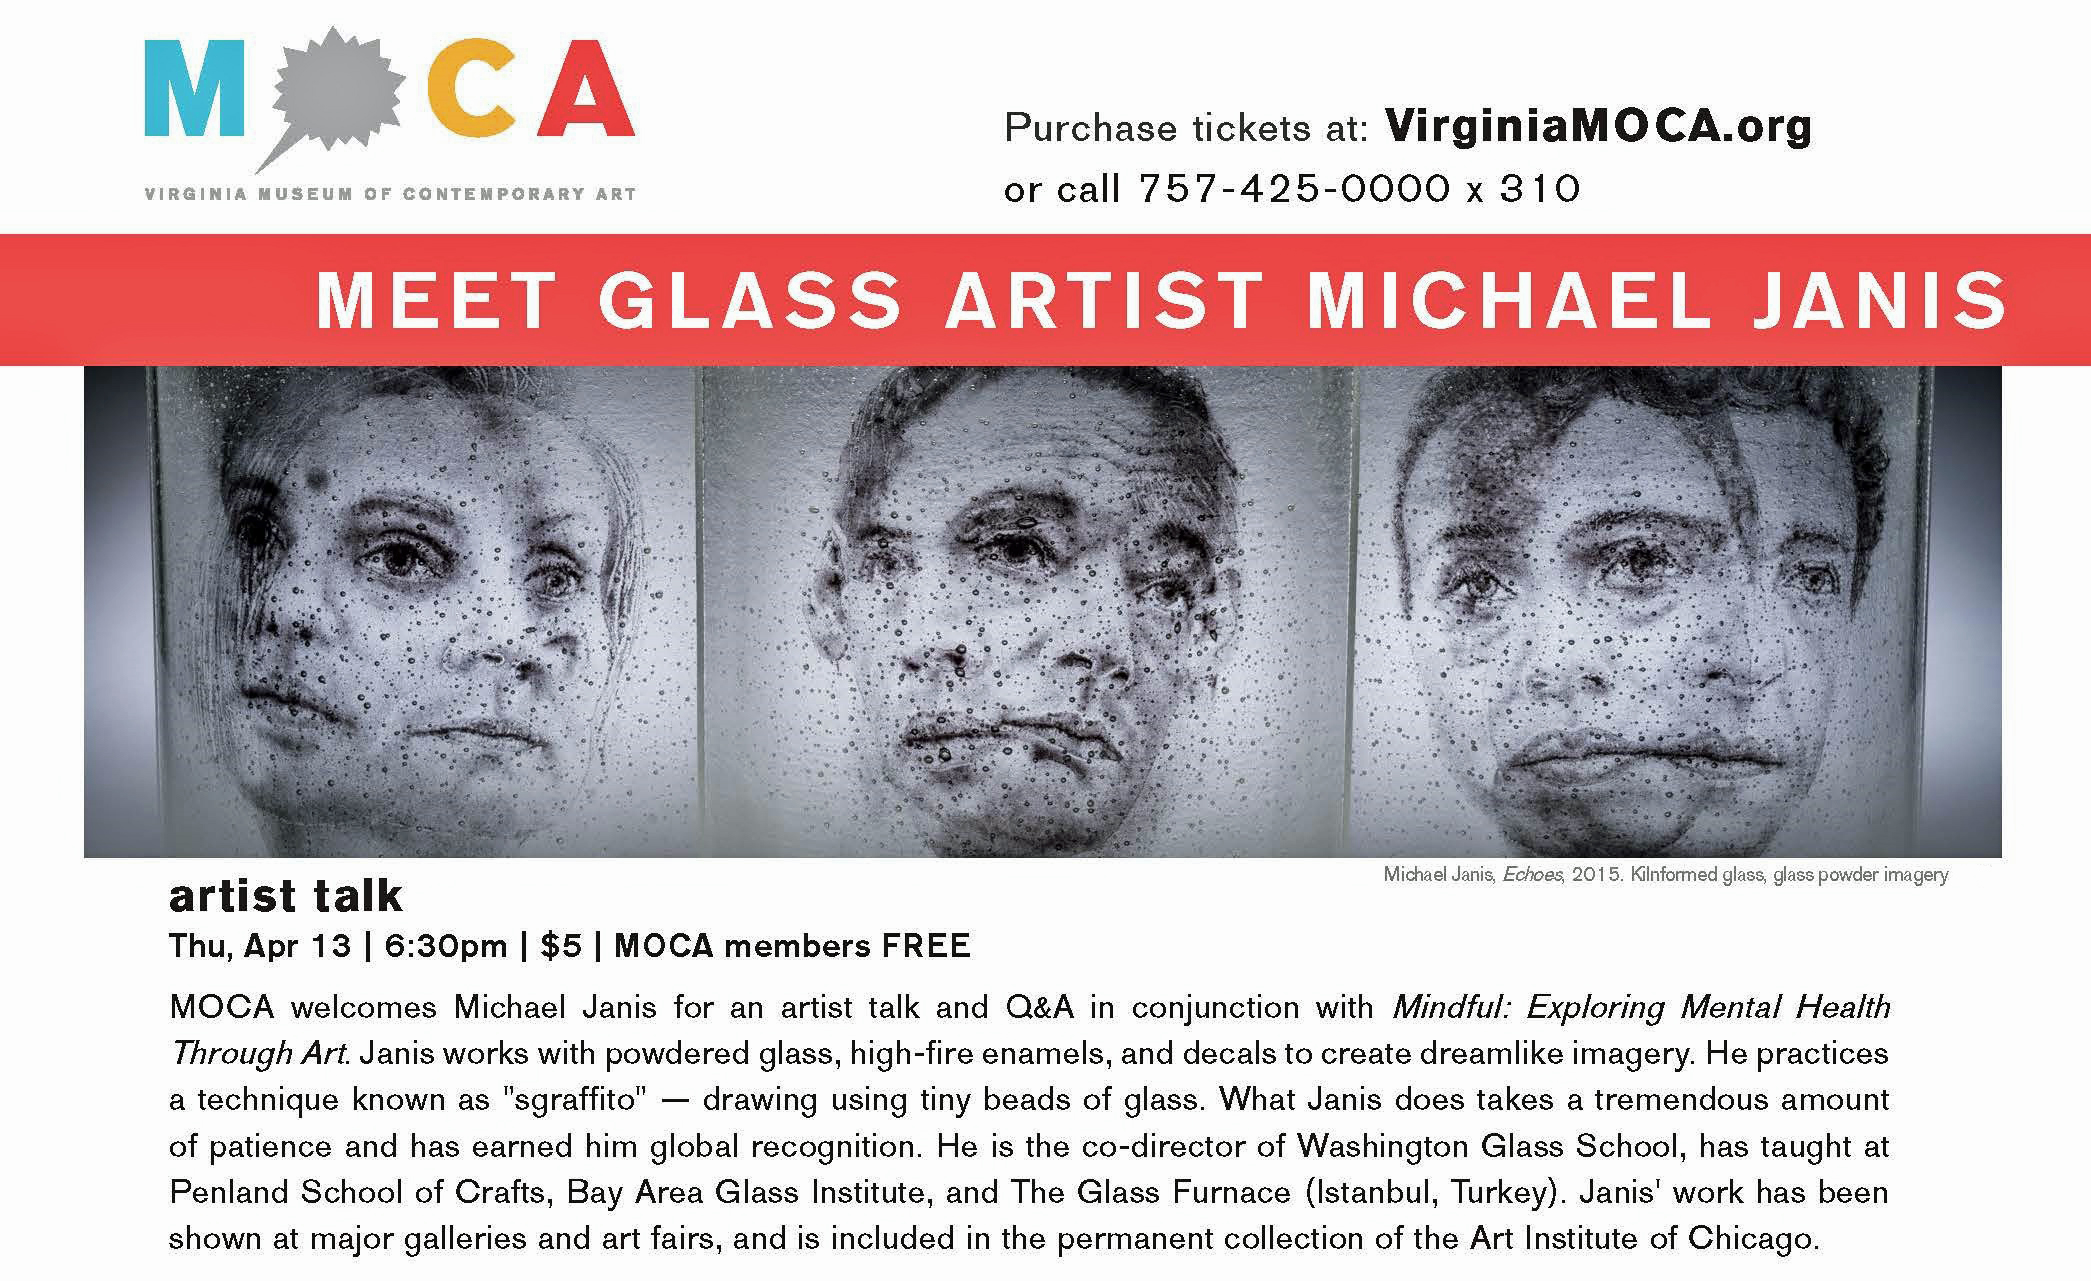 MOCA_meet_the_artist_Janis_michael.museum.glass.mental_health.mindful